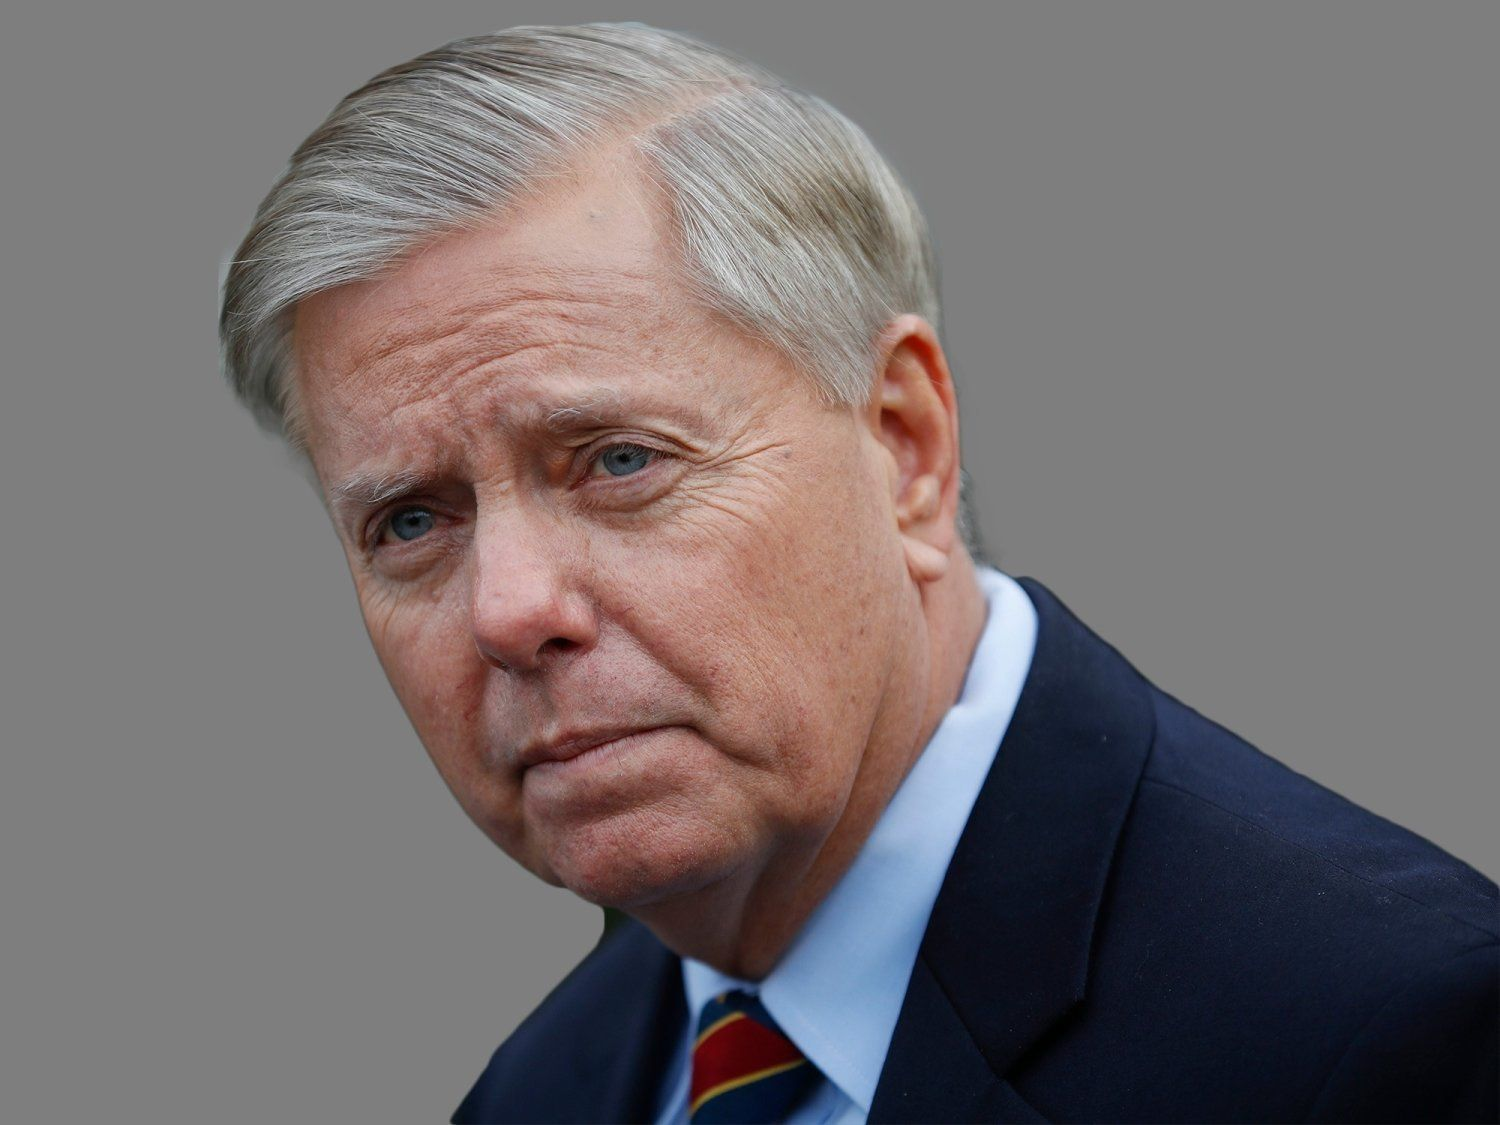 Lindsey Graham headshot, as US Senator of South Carolina, graphic element on gray